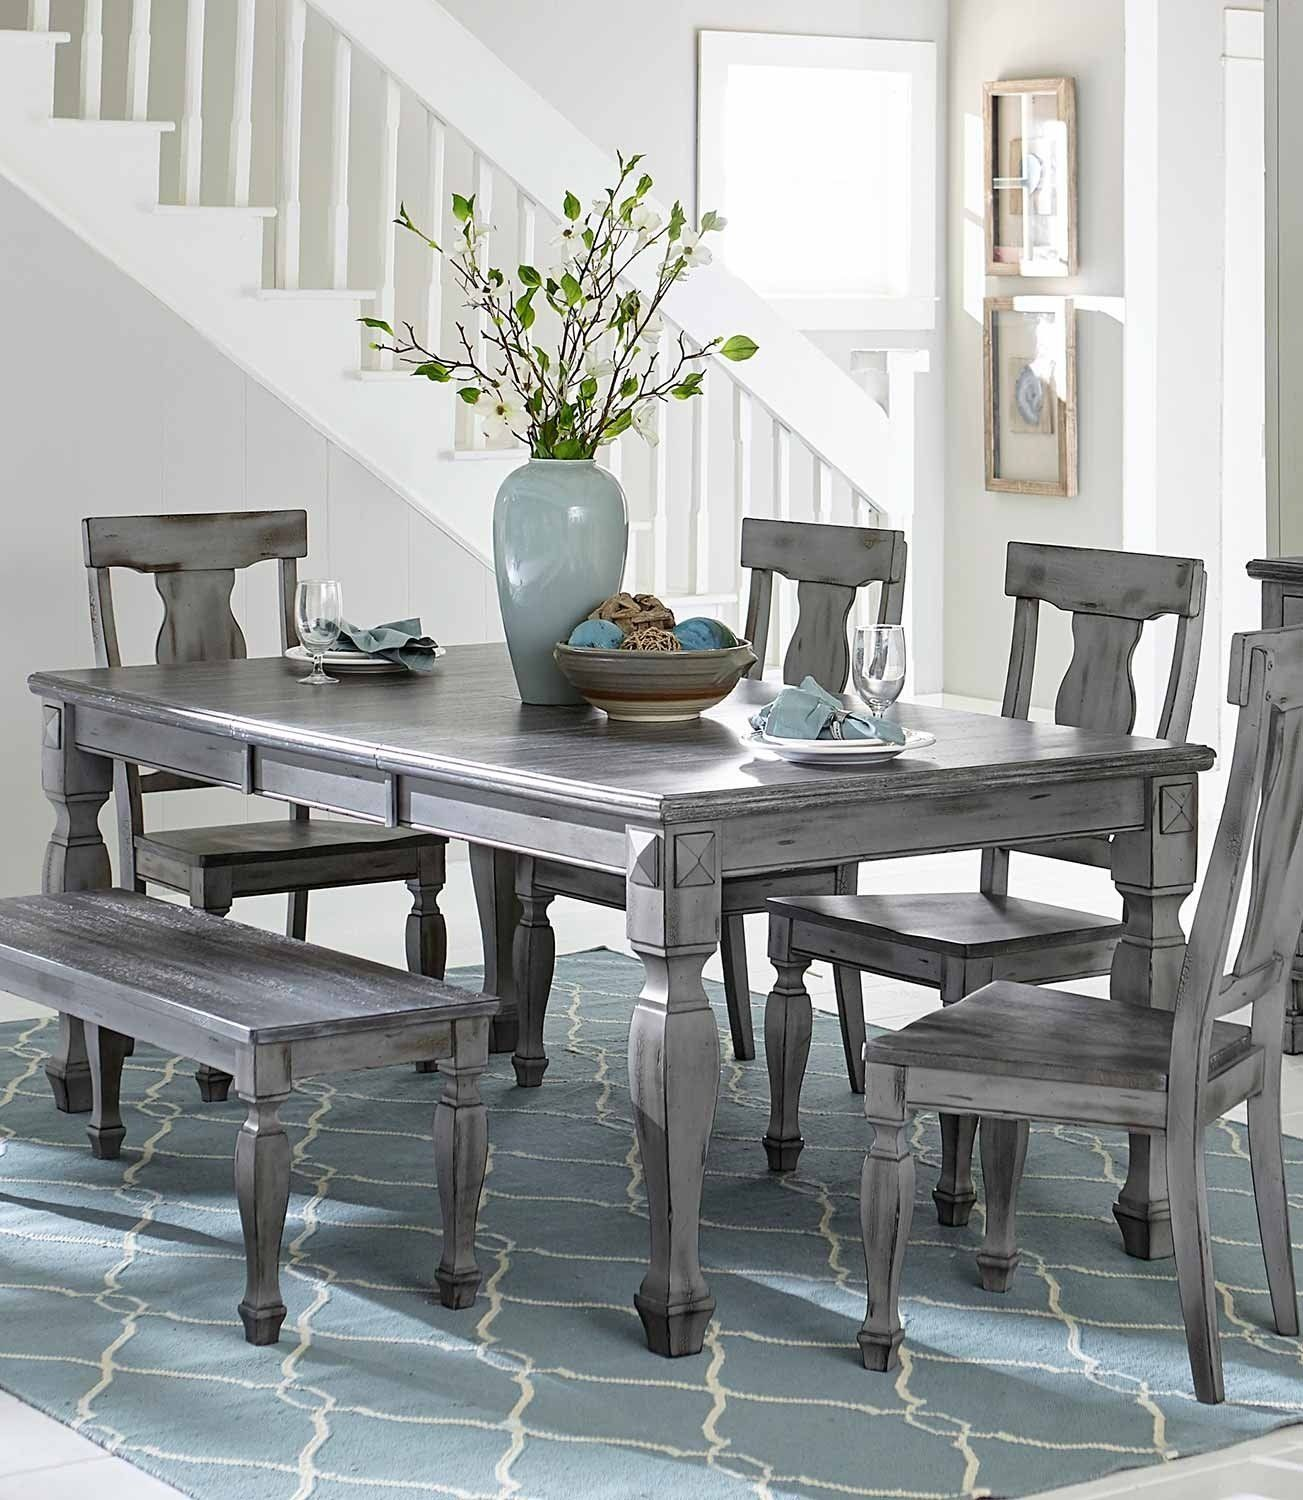 Fulbright Country Gray Rub Through Finish Dining Table Solid Wood Top Grey Dining Tables Wood Dining Table Grey